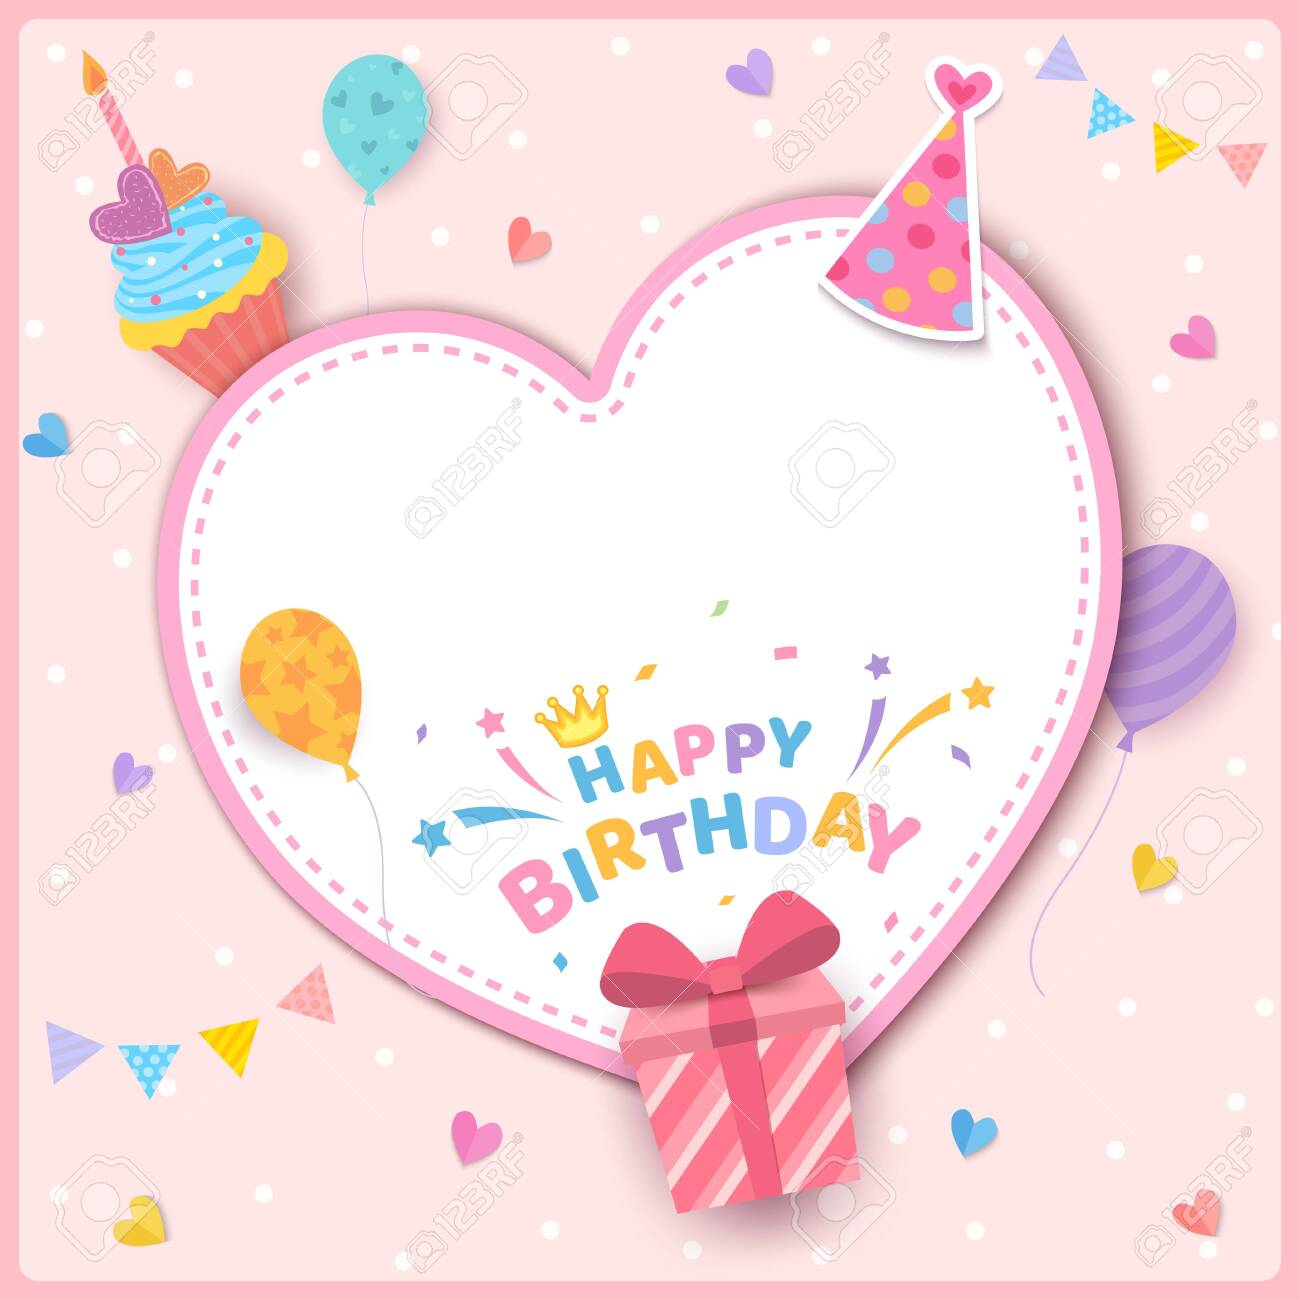 Incredible Happy Birthday Greeting Card Design With Heart Frame Decorated Funny Birthday Cards Online Fluifree Goldxyz